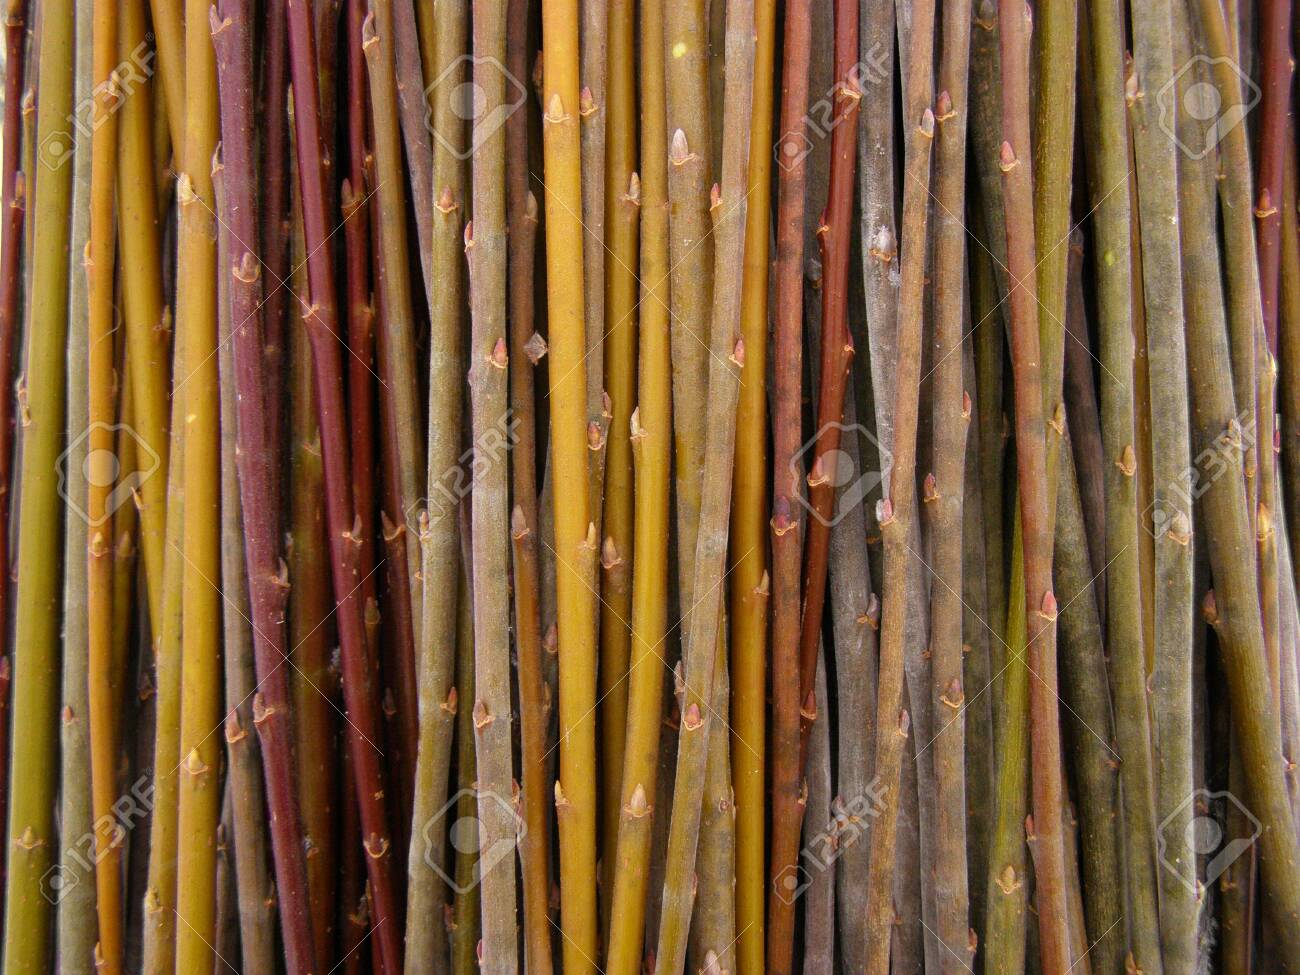 A Lot Of Willow Twigs Raw Material For Basket Weaving Stock Photo Picture And Royalty Free Image Image 133661857